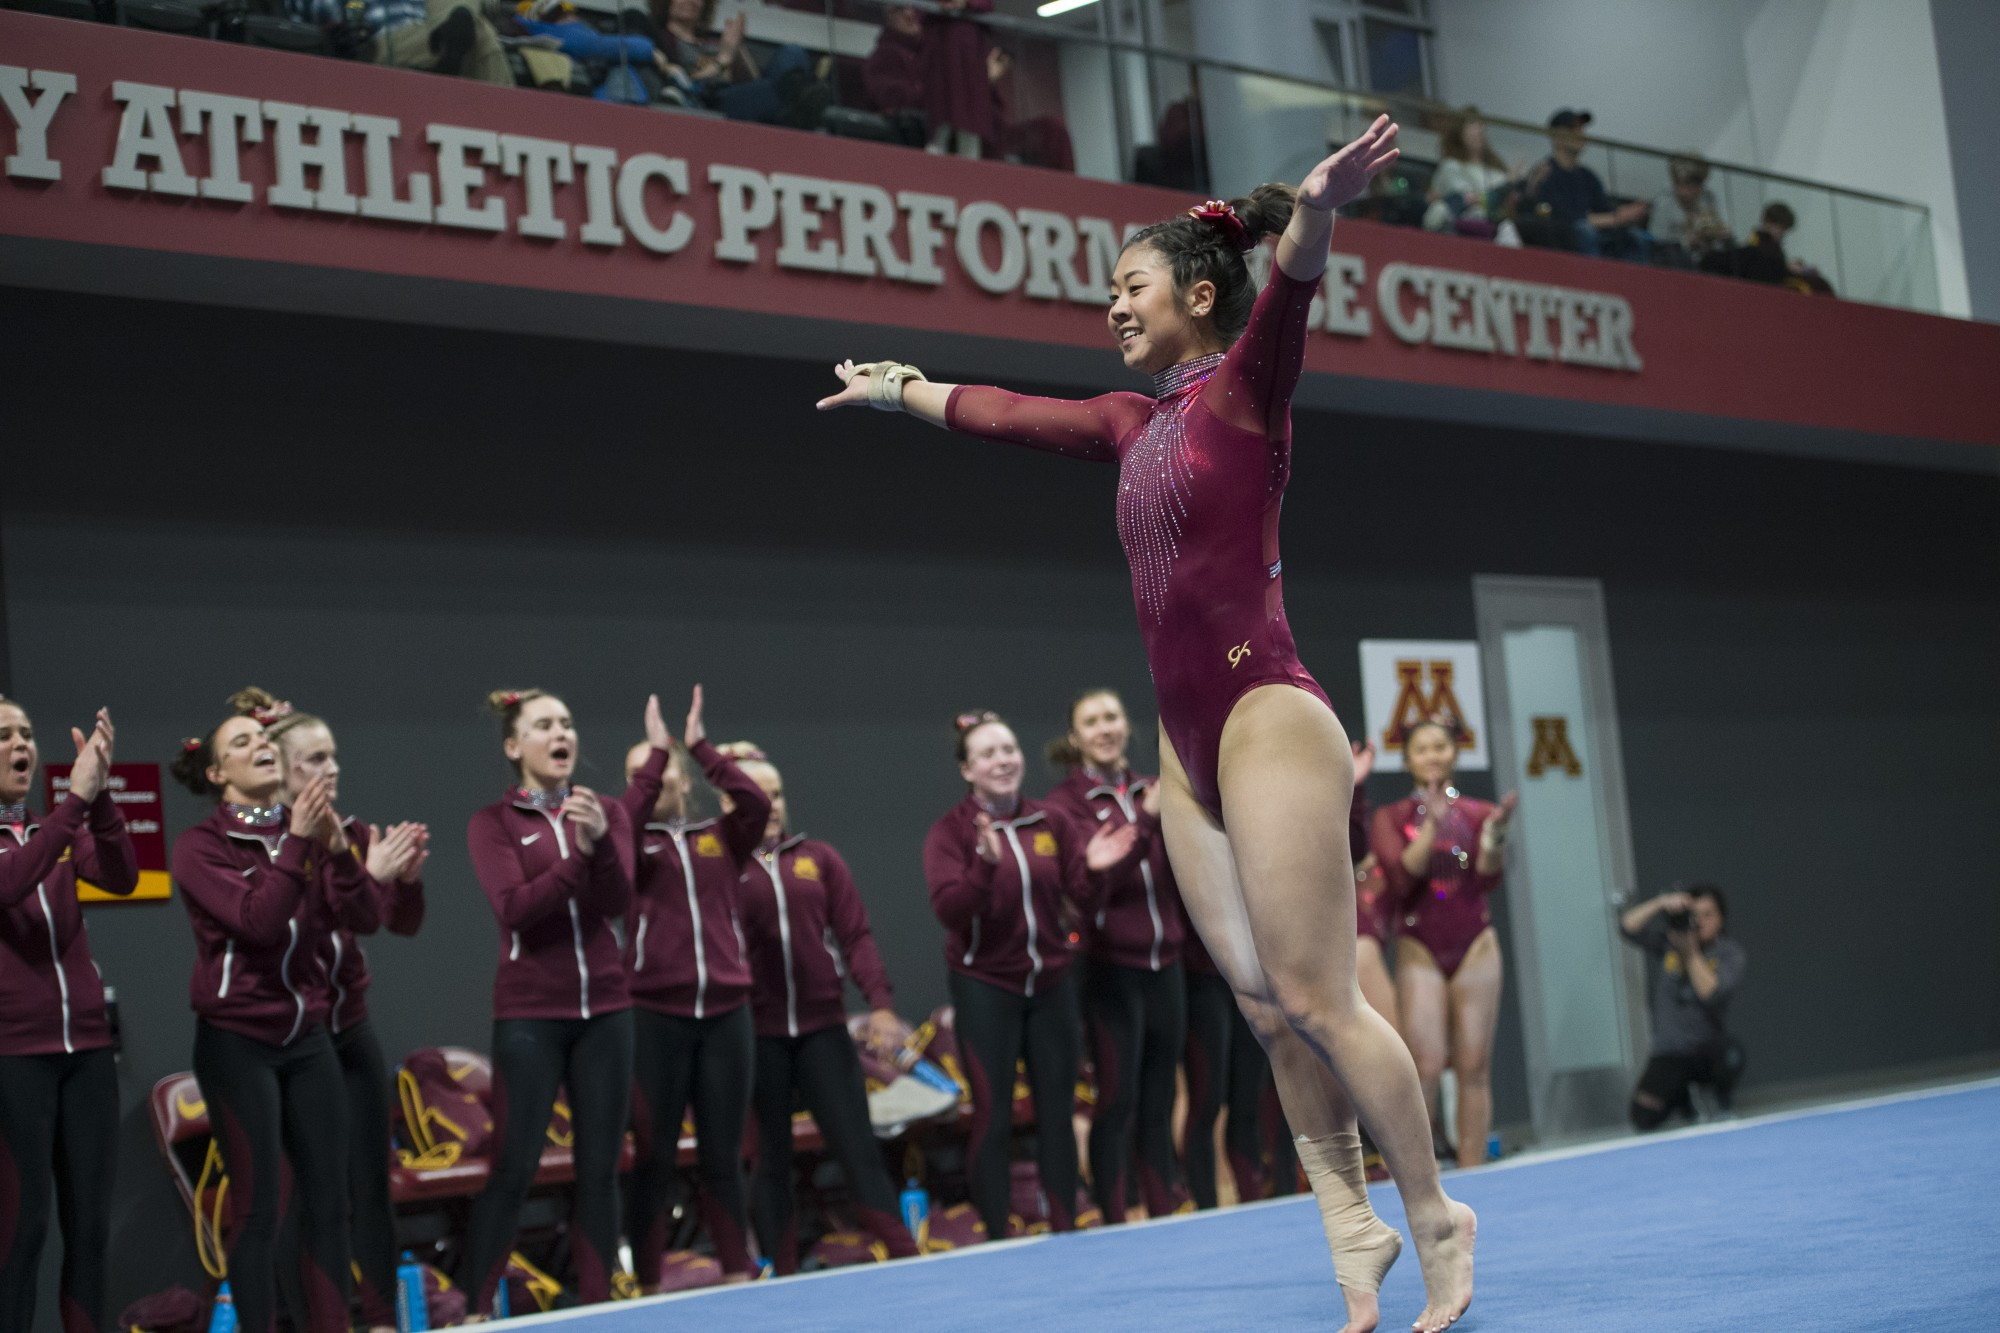 Ali Sonier performs a routine.